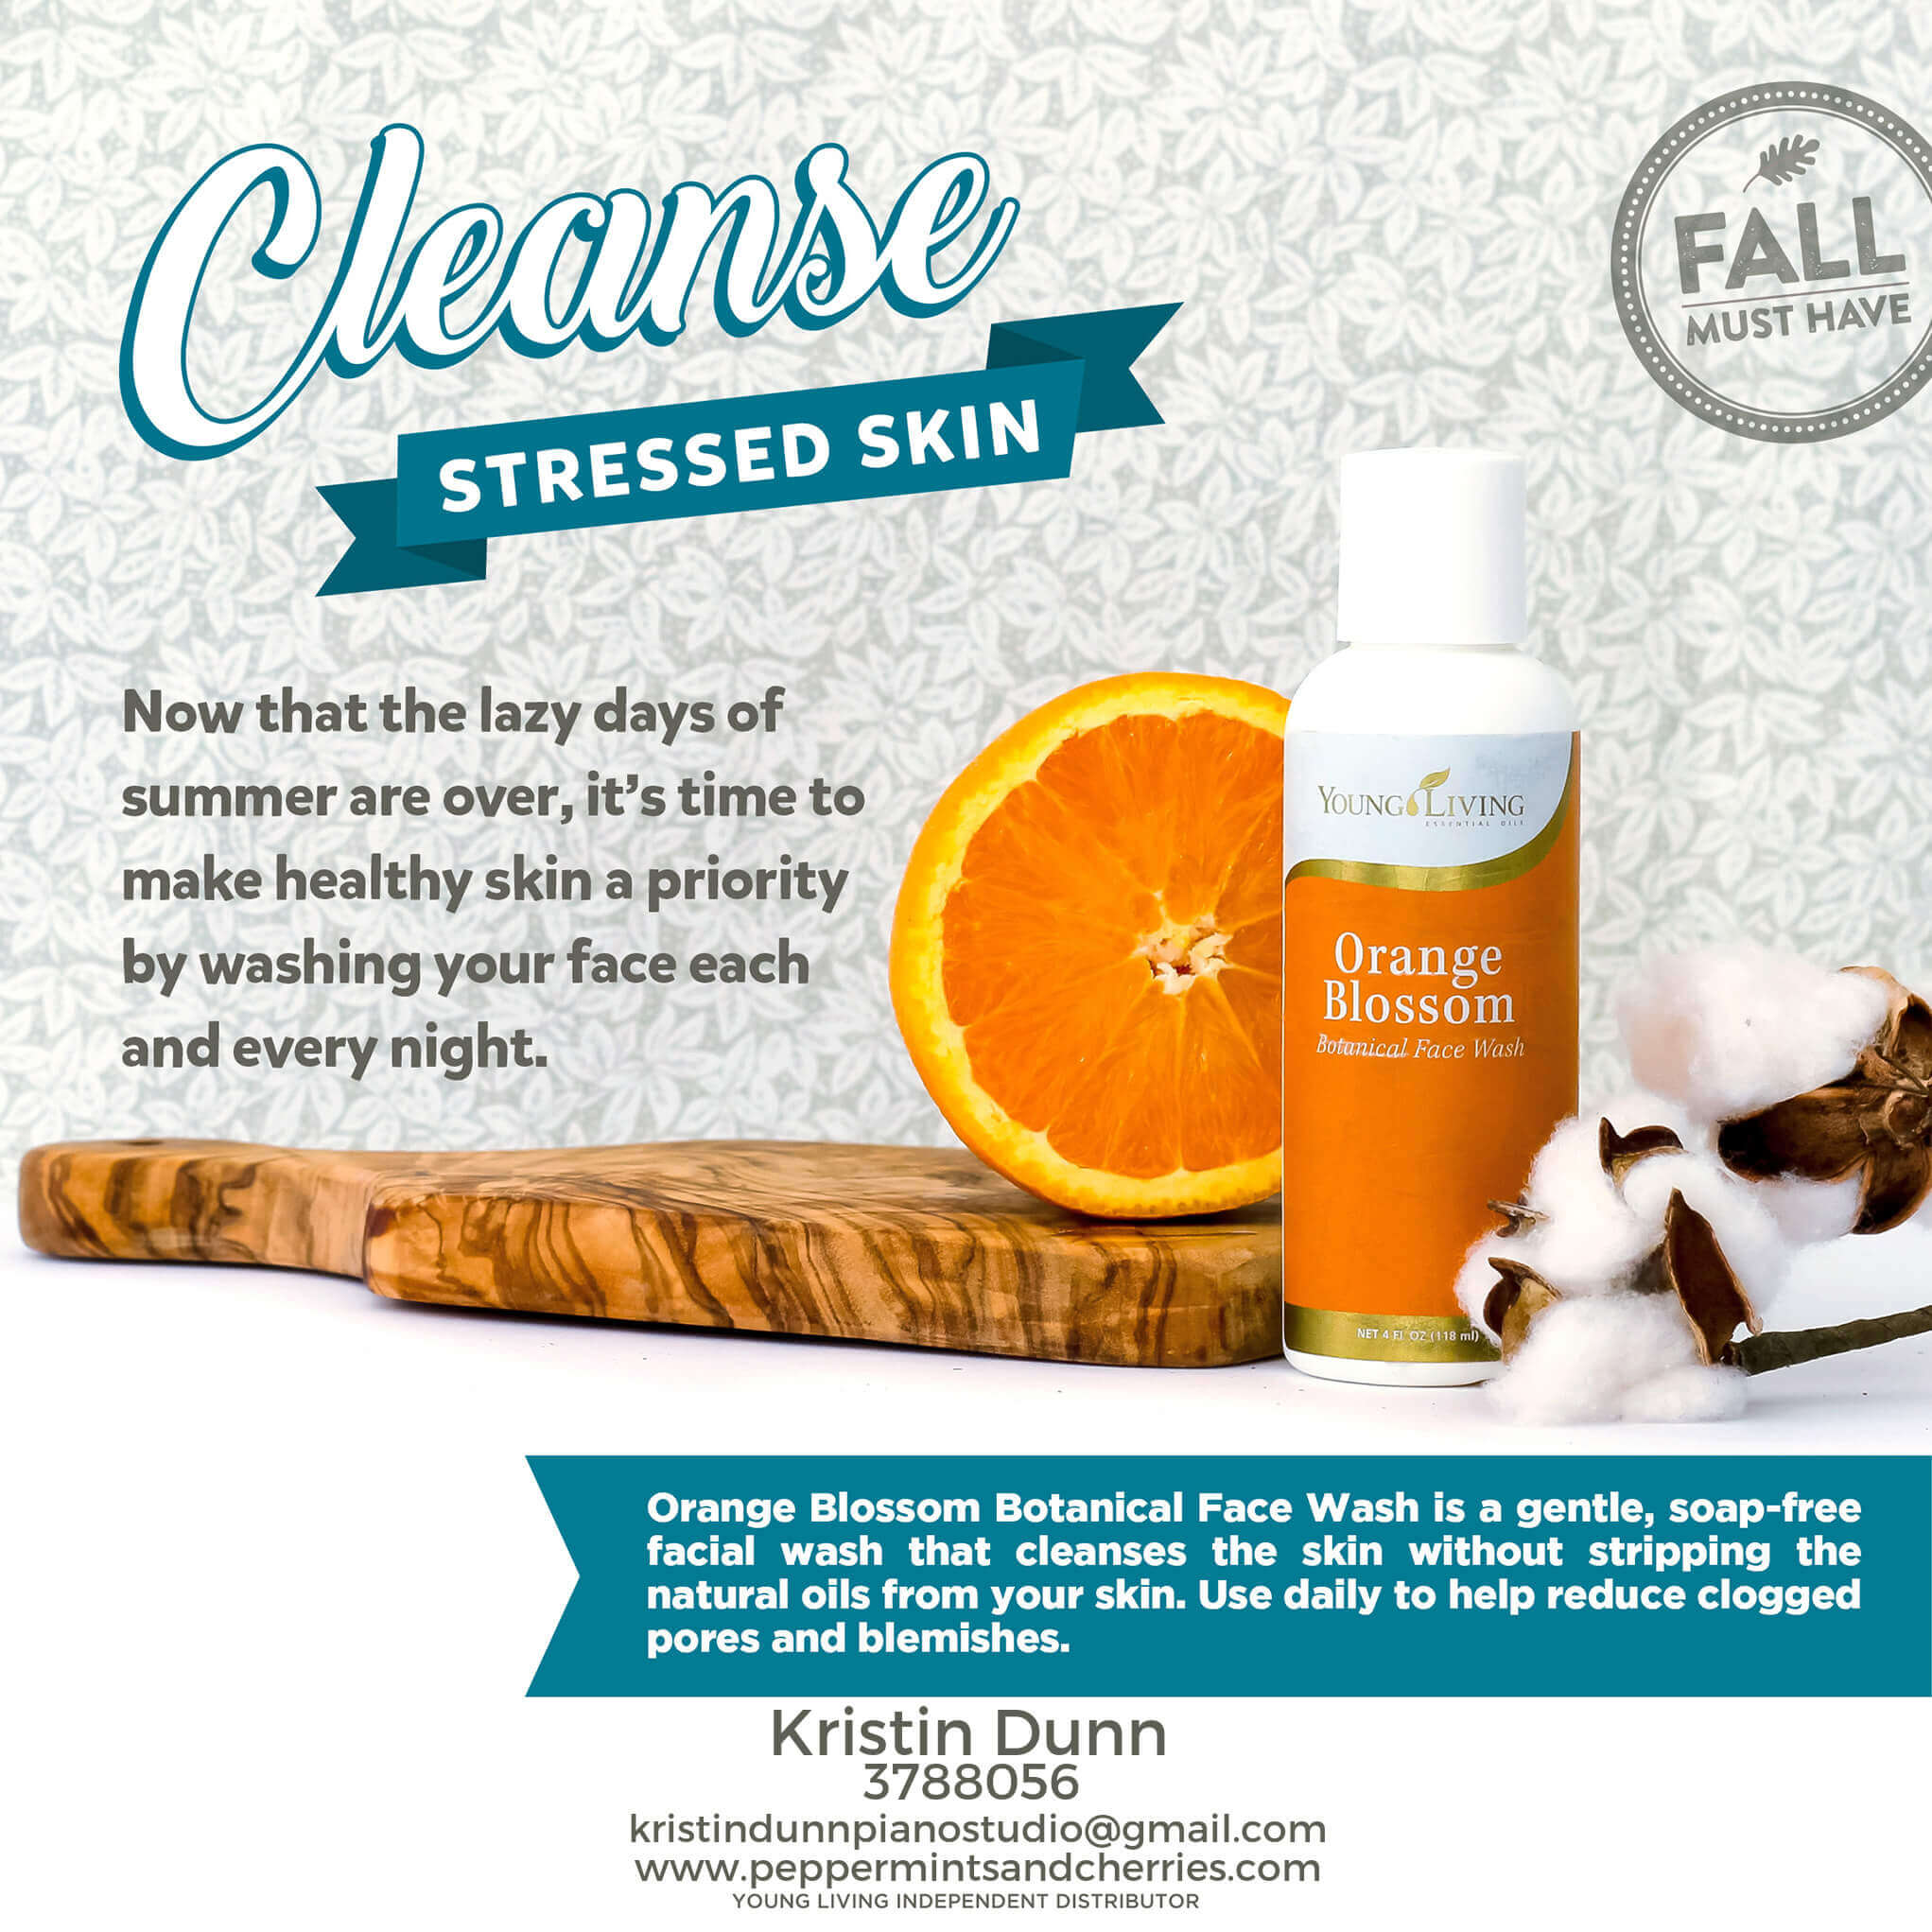 Cleanse Stressed Skin with Young Living's Orange Blossom Face Wash